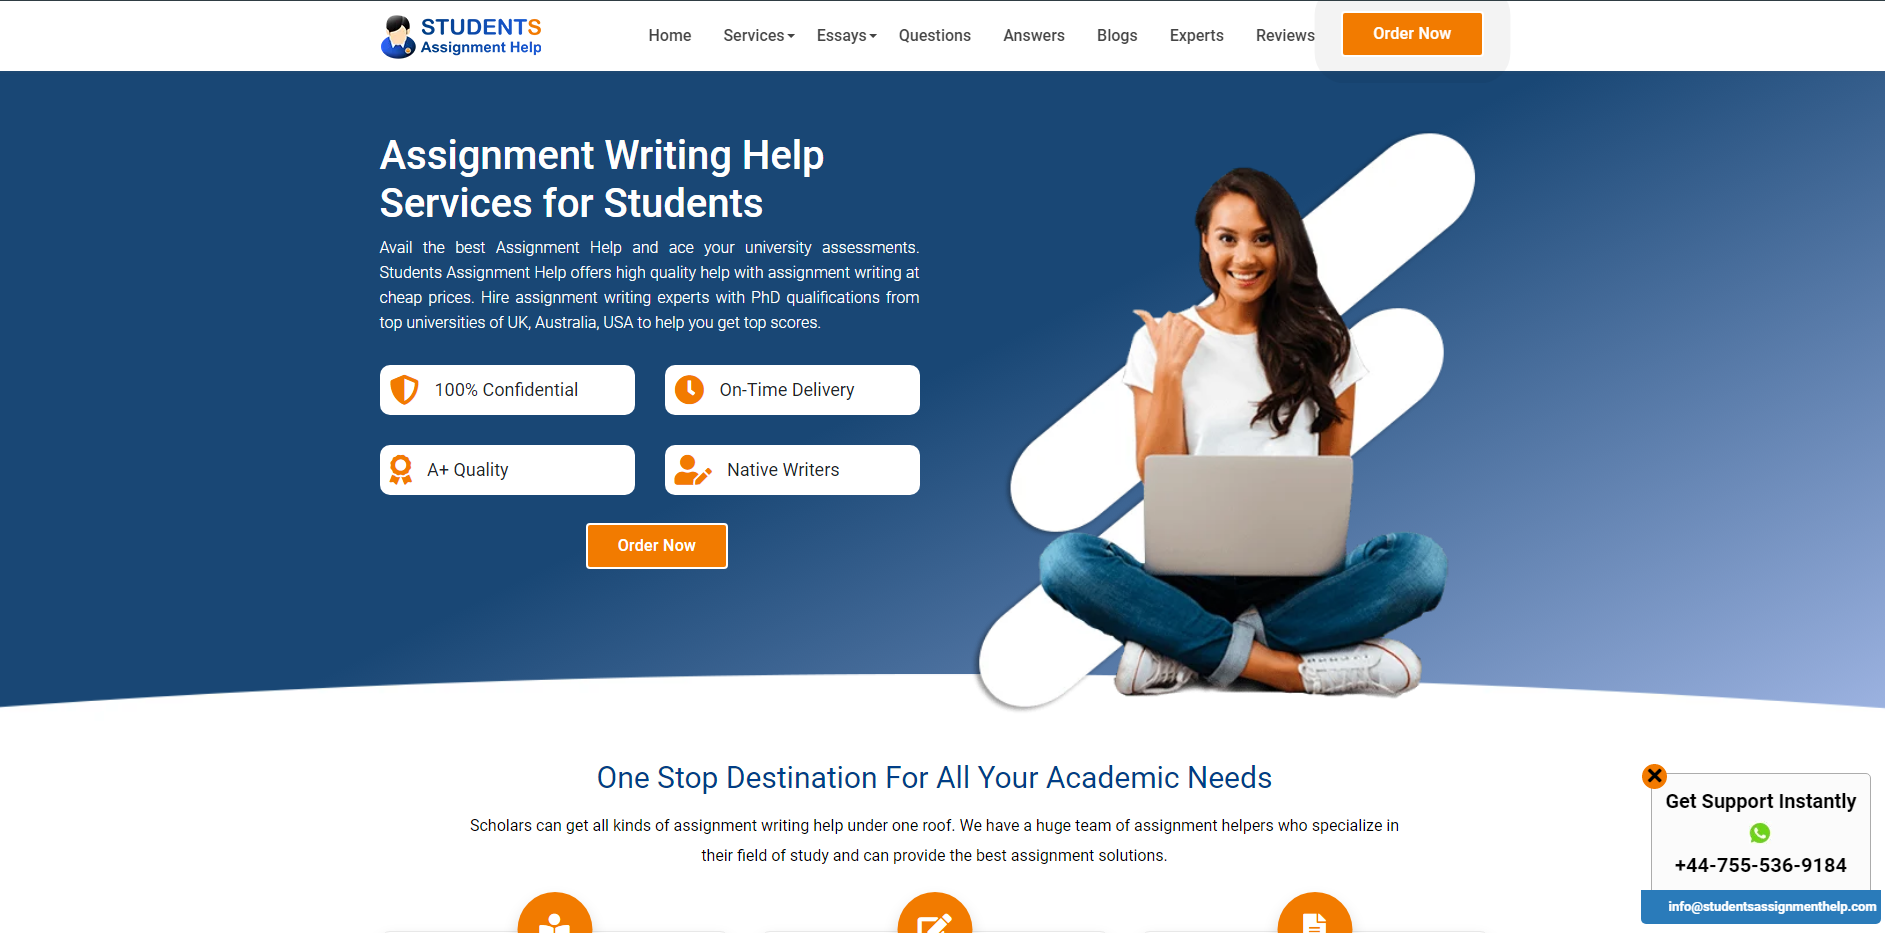 Get the Most Objective and Detailed StudentsAssignmentHelp Review